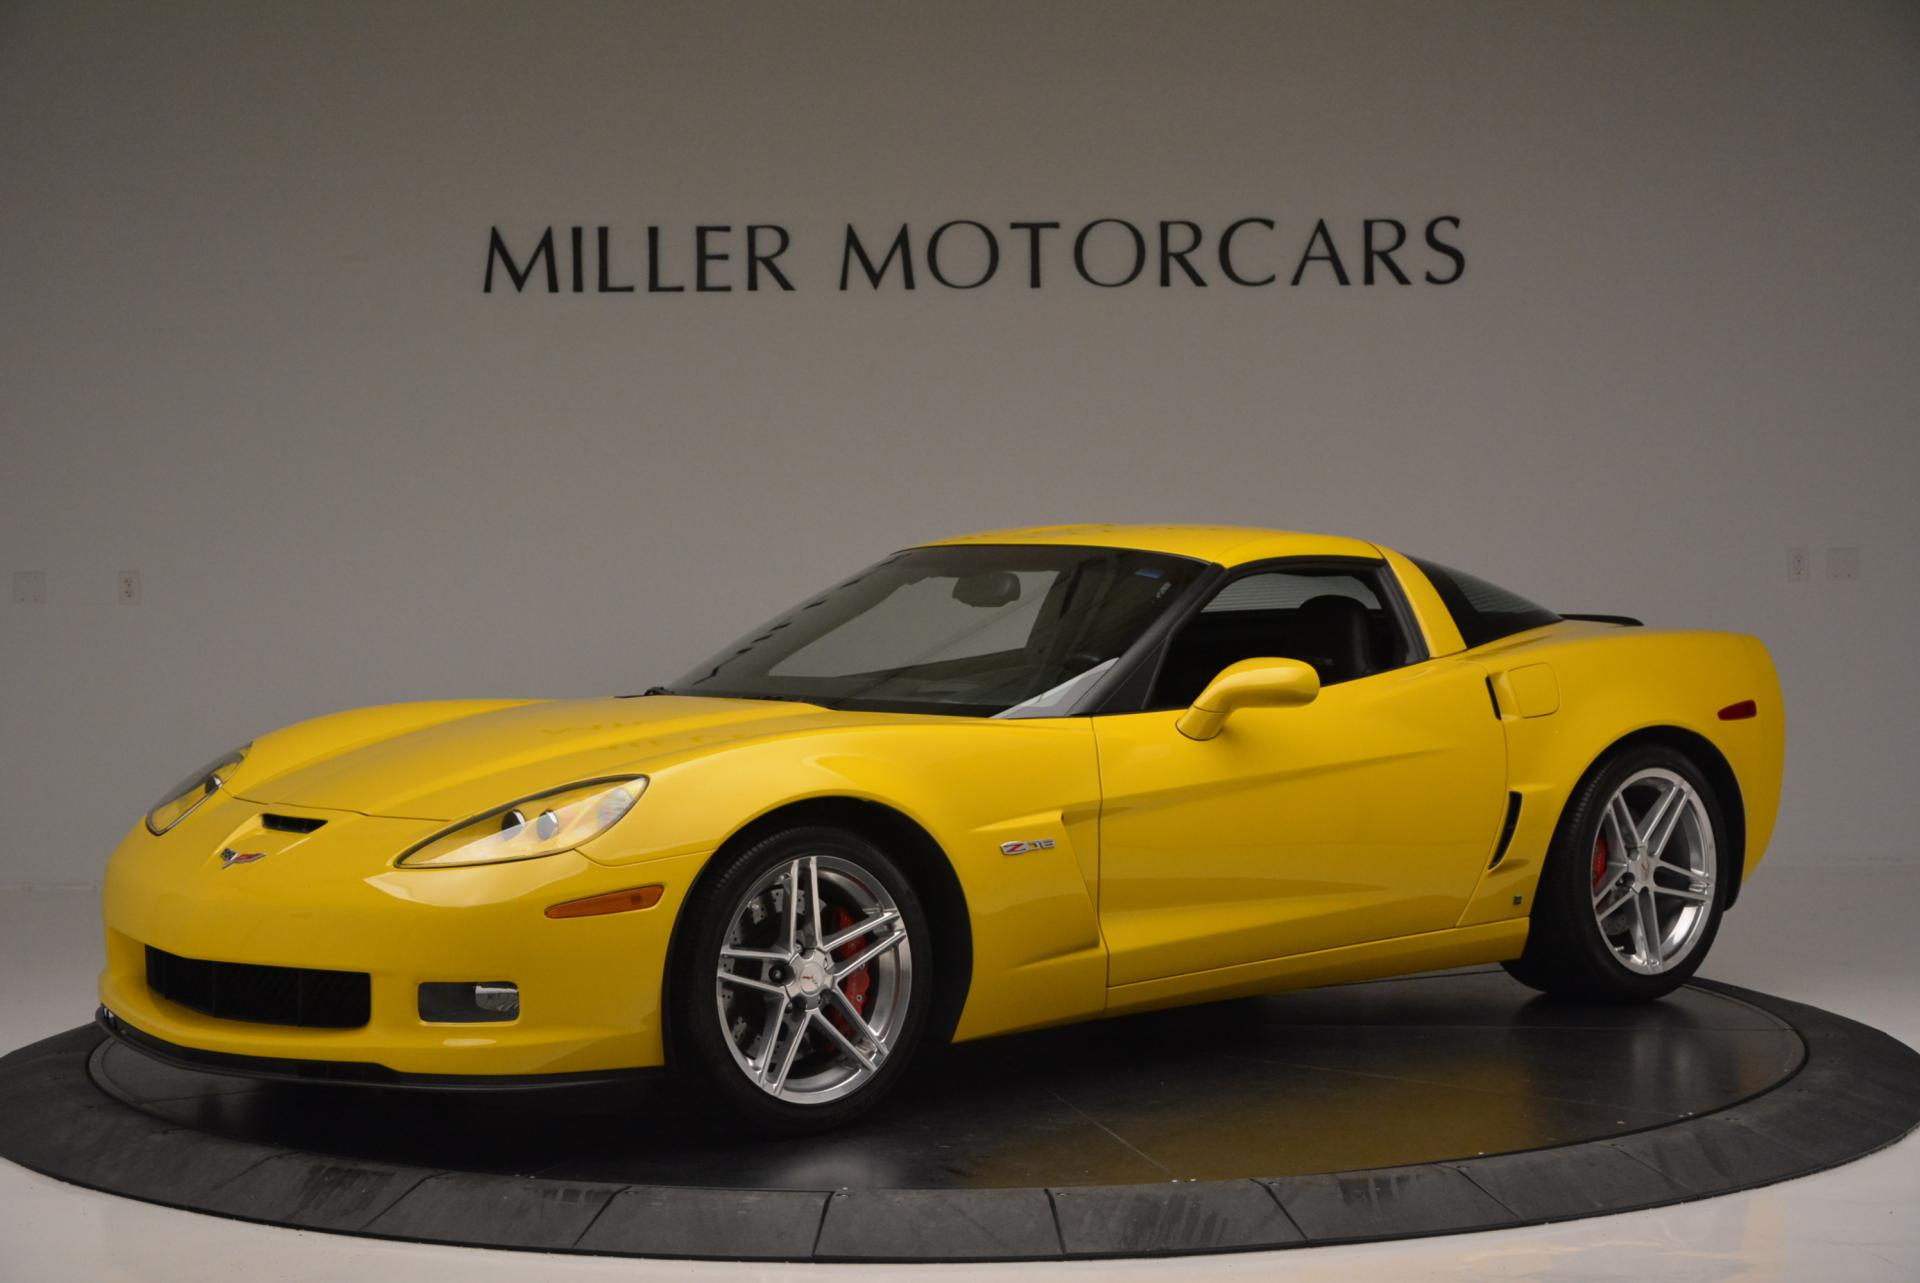 Used 2006 Chevrolet Corvette Z06 Hardtop for sale Sold at Rolls-Royce Motor Cars Greenwich in Greenwich CT 06830 1